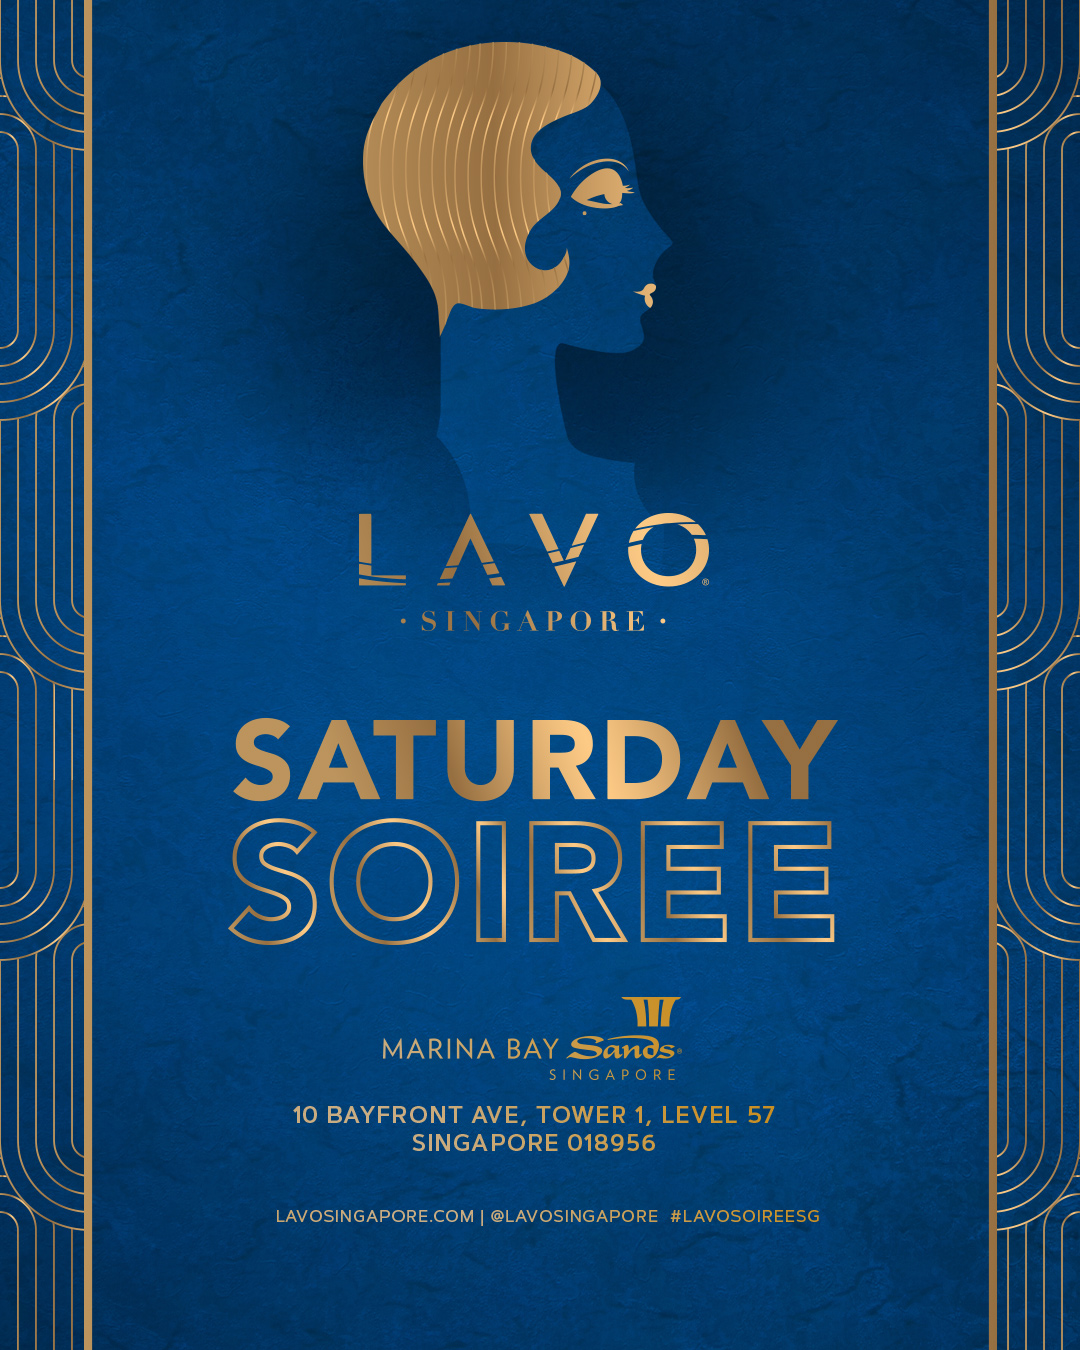 saturday soiree lavo singapore